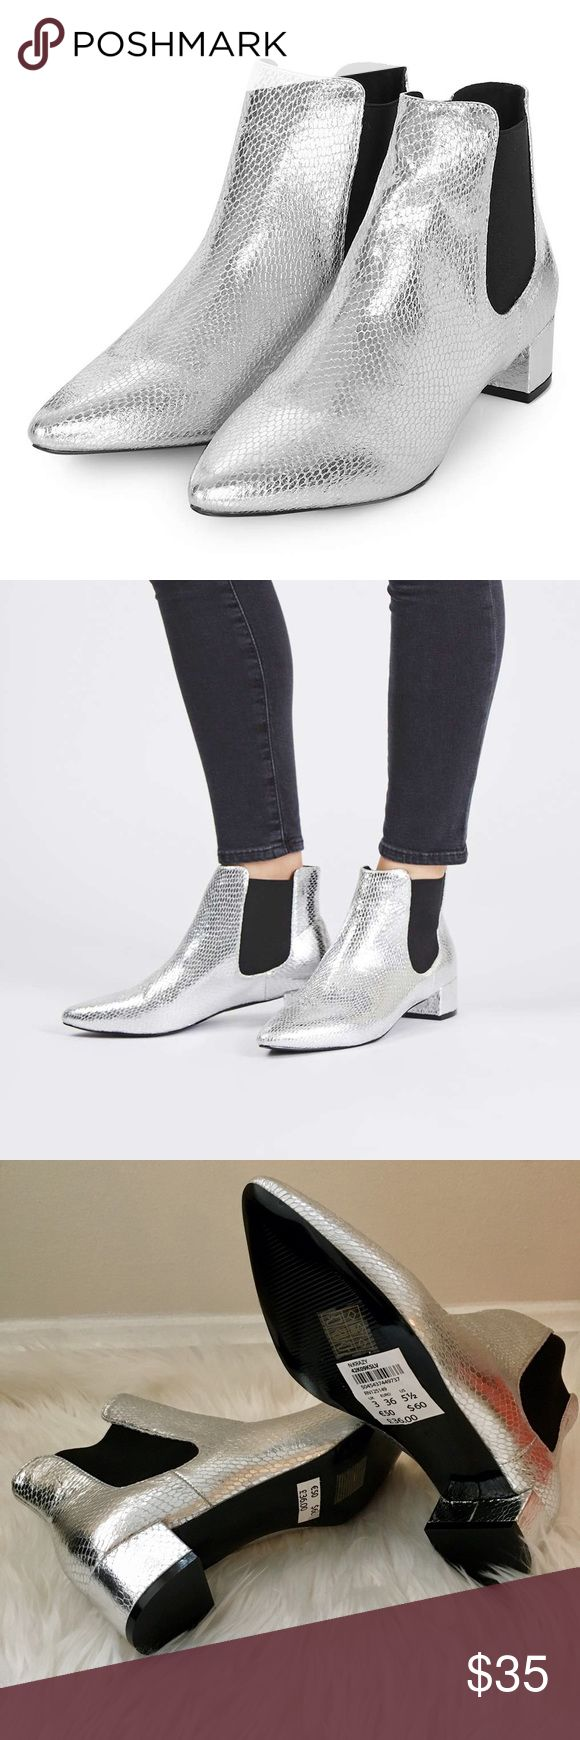 🆕 Topshop Silver Ankle Boots Fierce ankle booties in sleek silver with Chelsea details. Brand new without box, never been worn. Topshop Shoes Ankle Boots & Booties